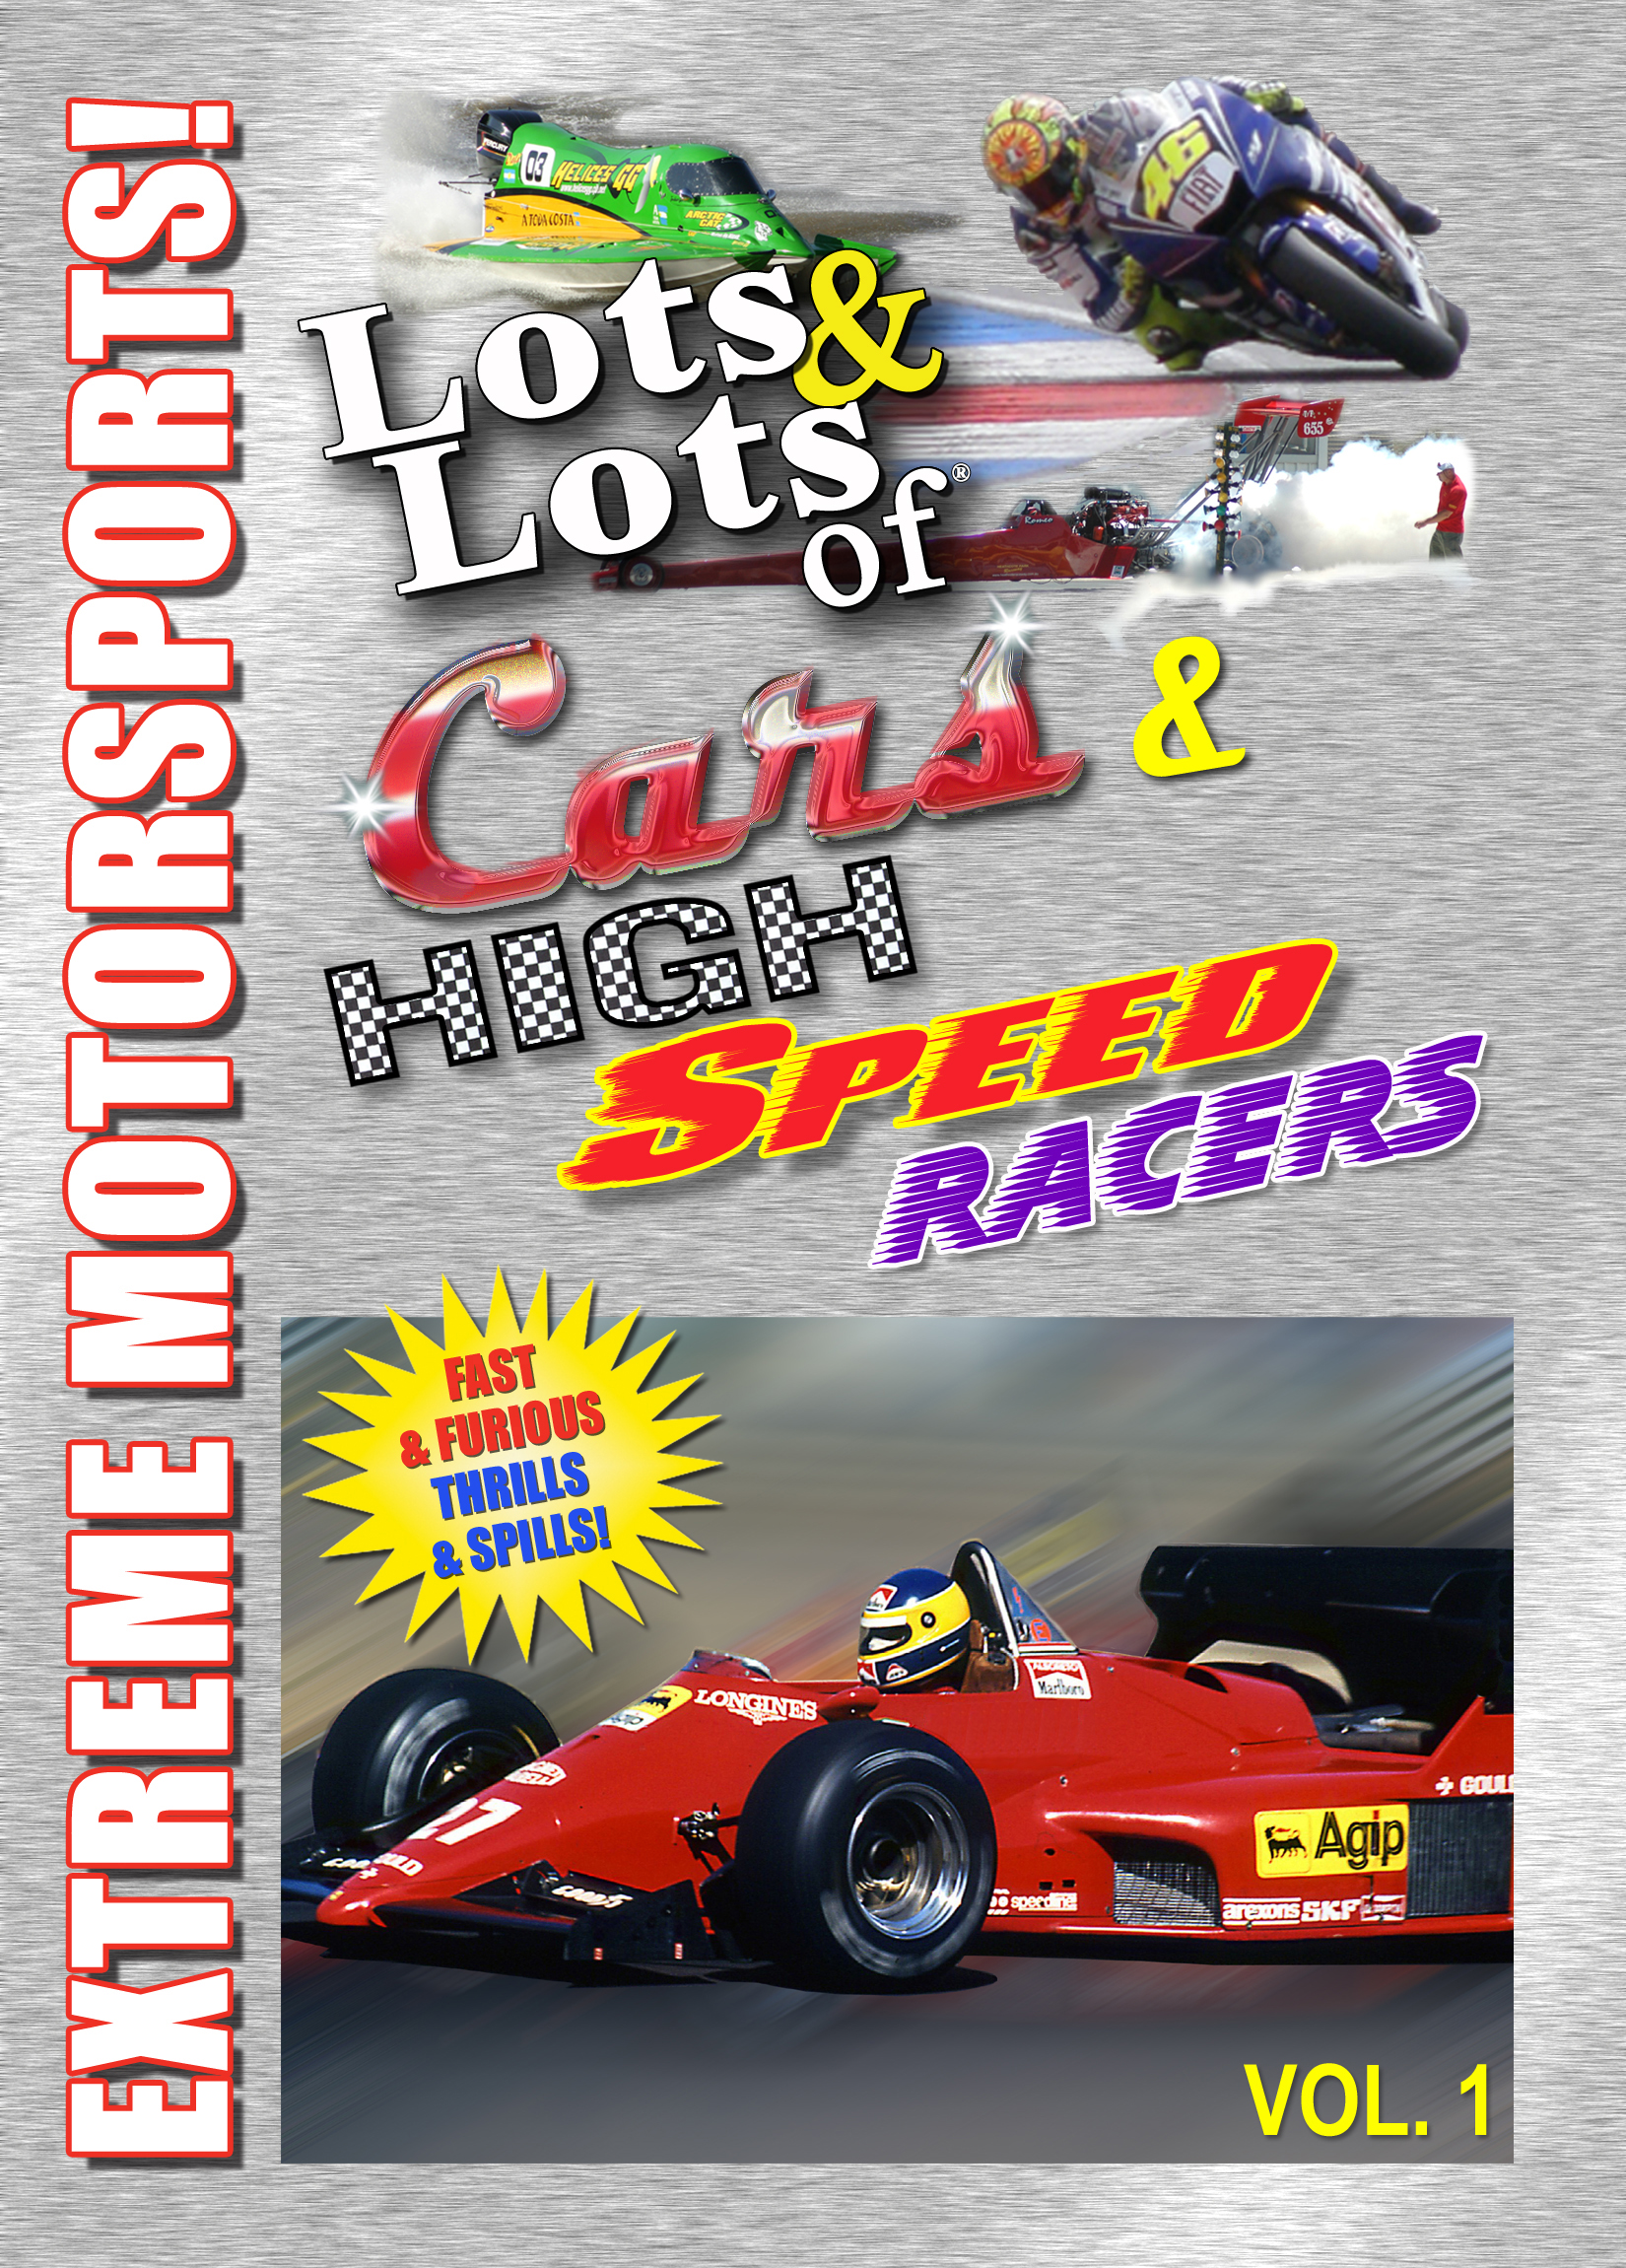 All About Lots Amp Lots Of Fast Cars Monster Trucks And